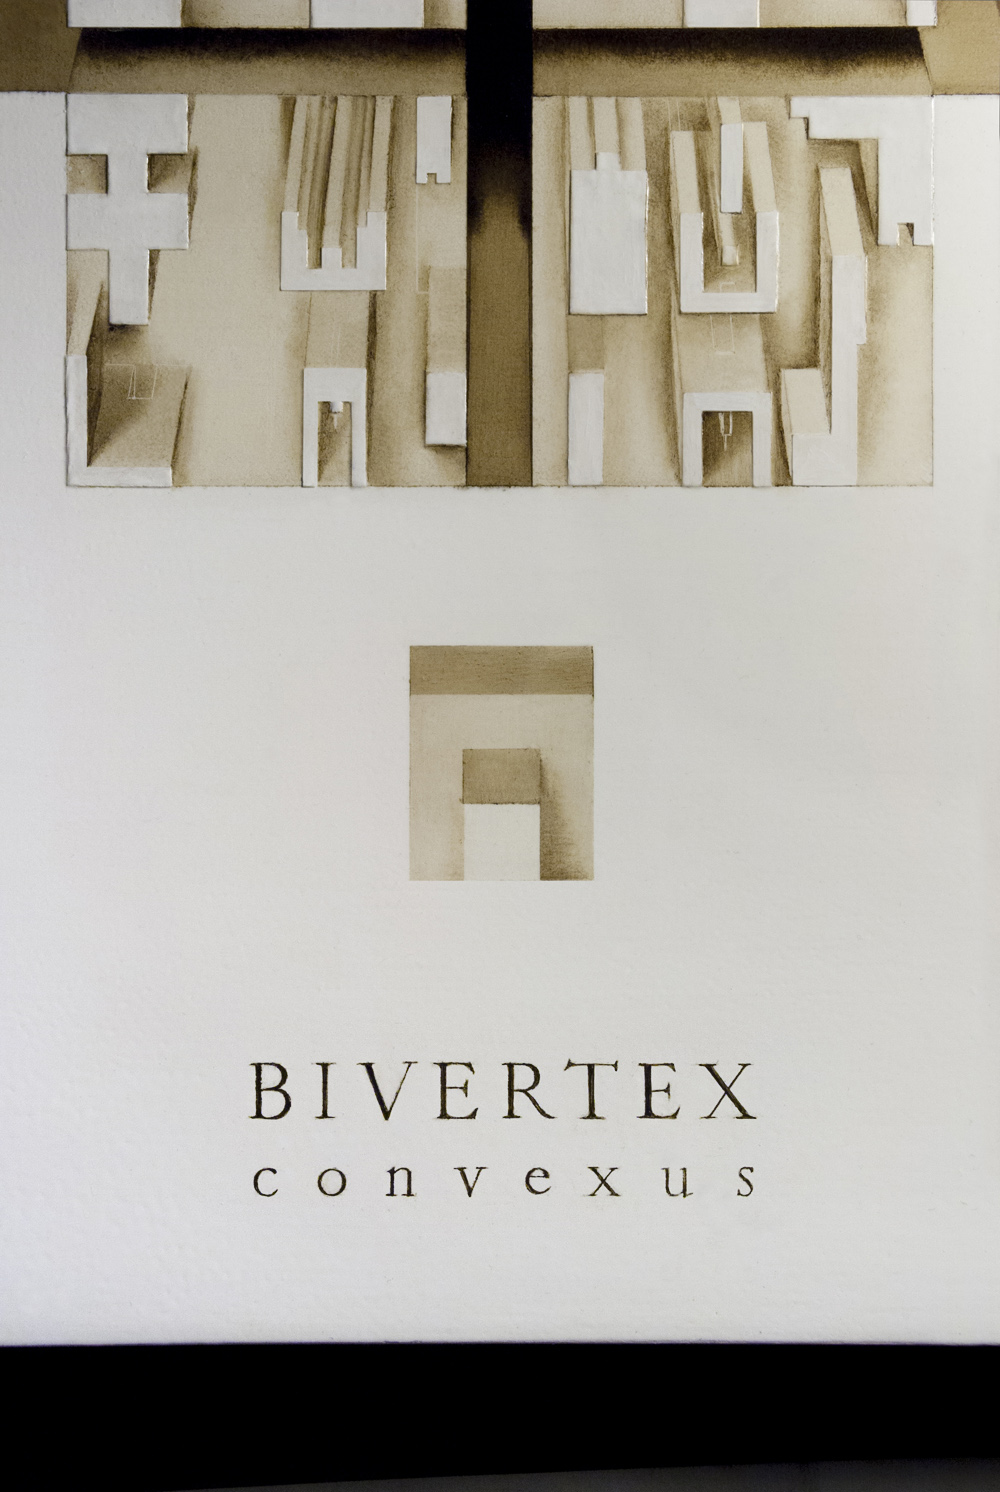 BIVERTEX convexus (fragment)